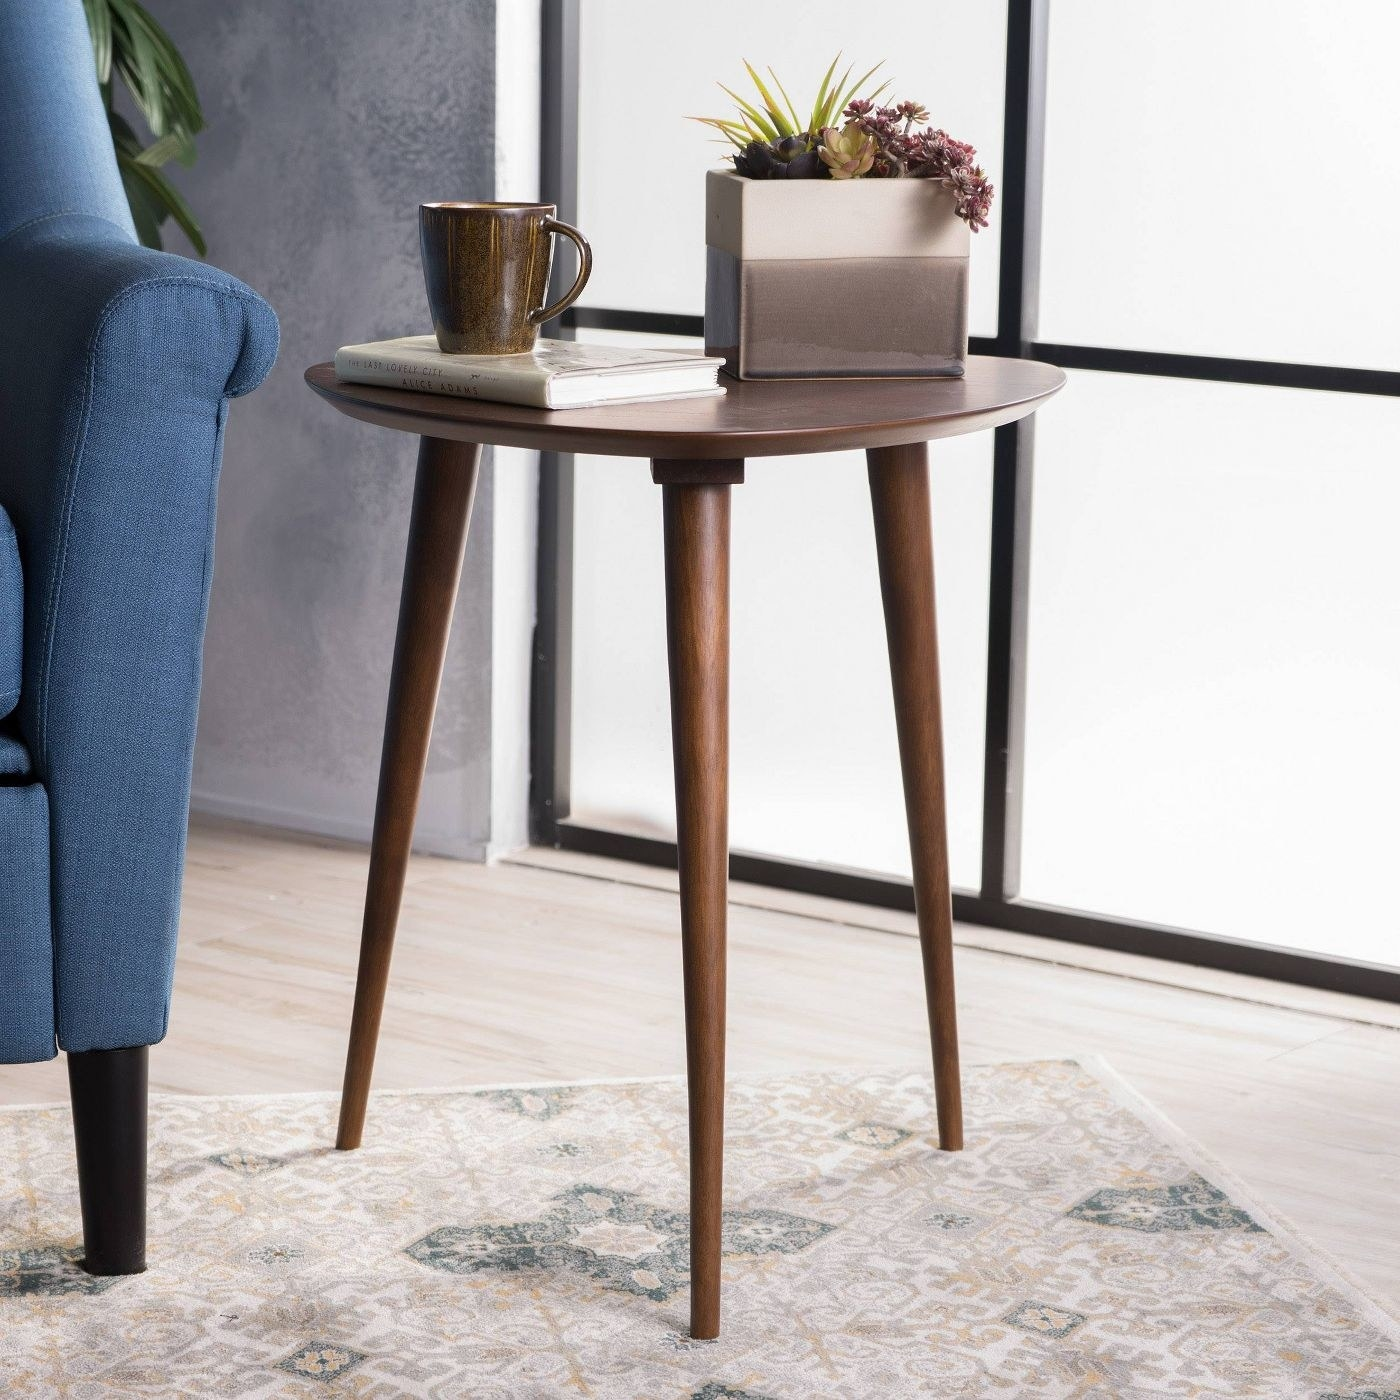 The table in the walnut finish next to a blue chair